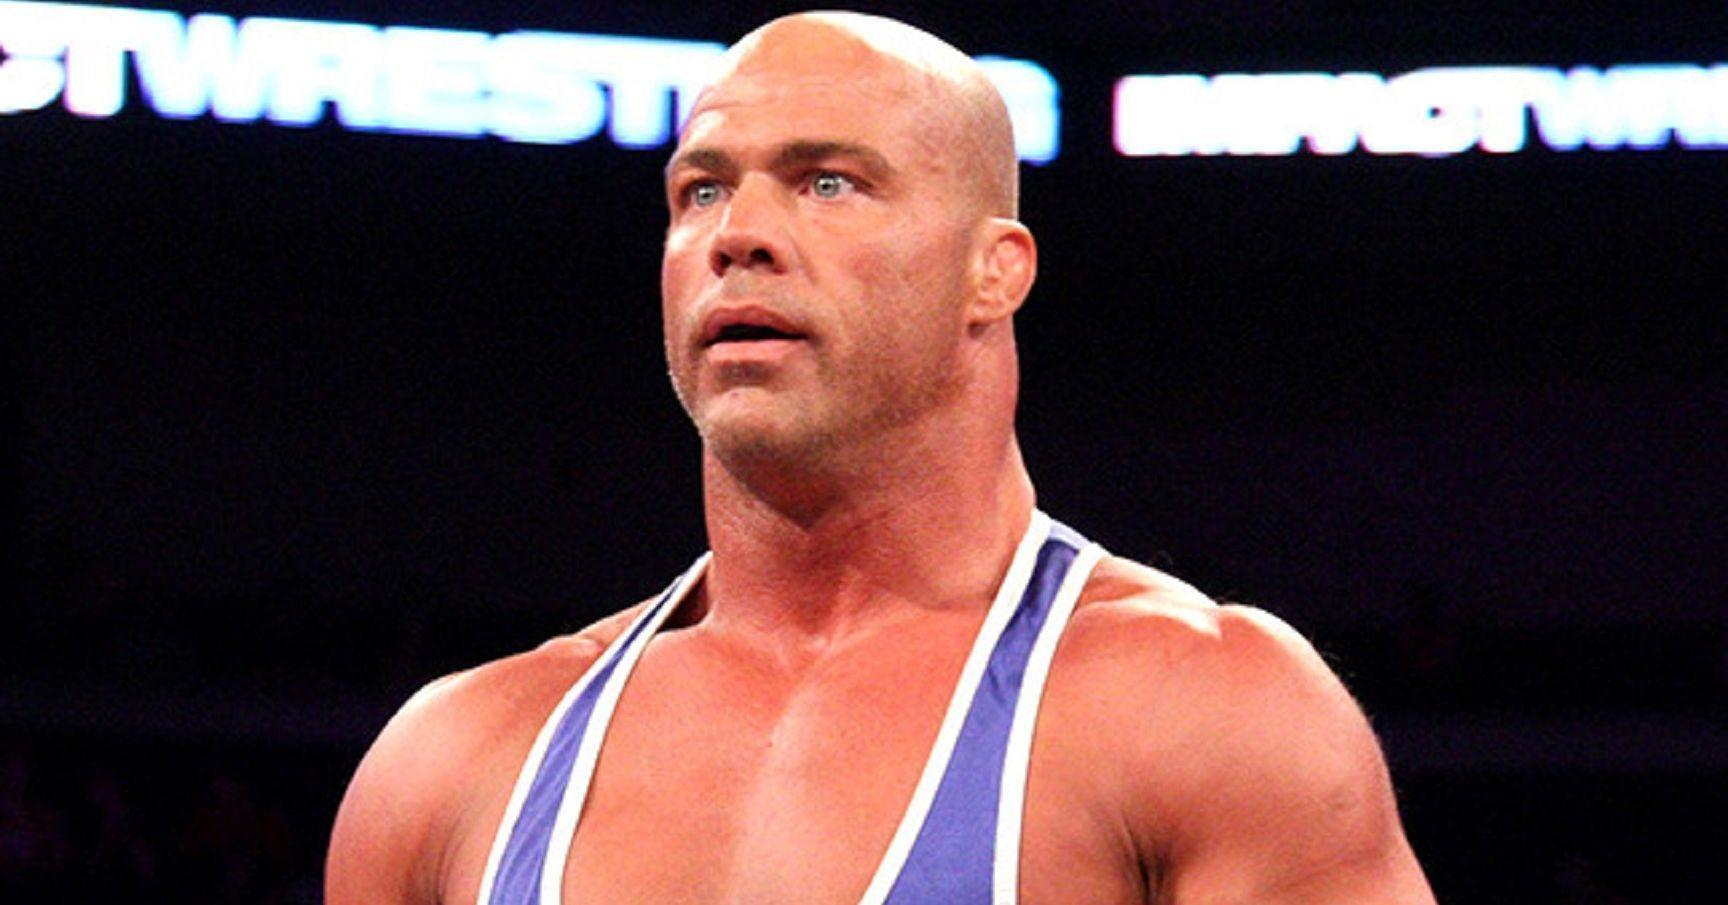 Kurt Angle Wallpapers HD Backgrounds | WallpapersIn4k.net